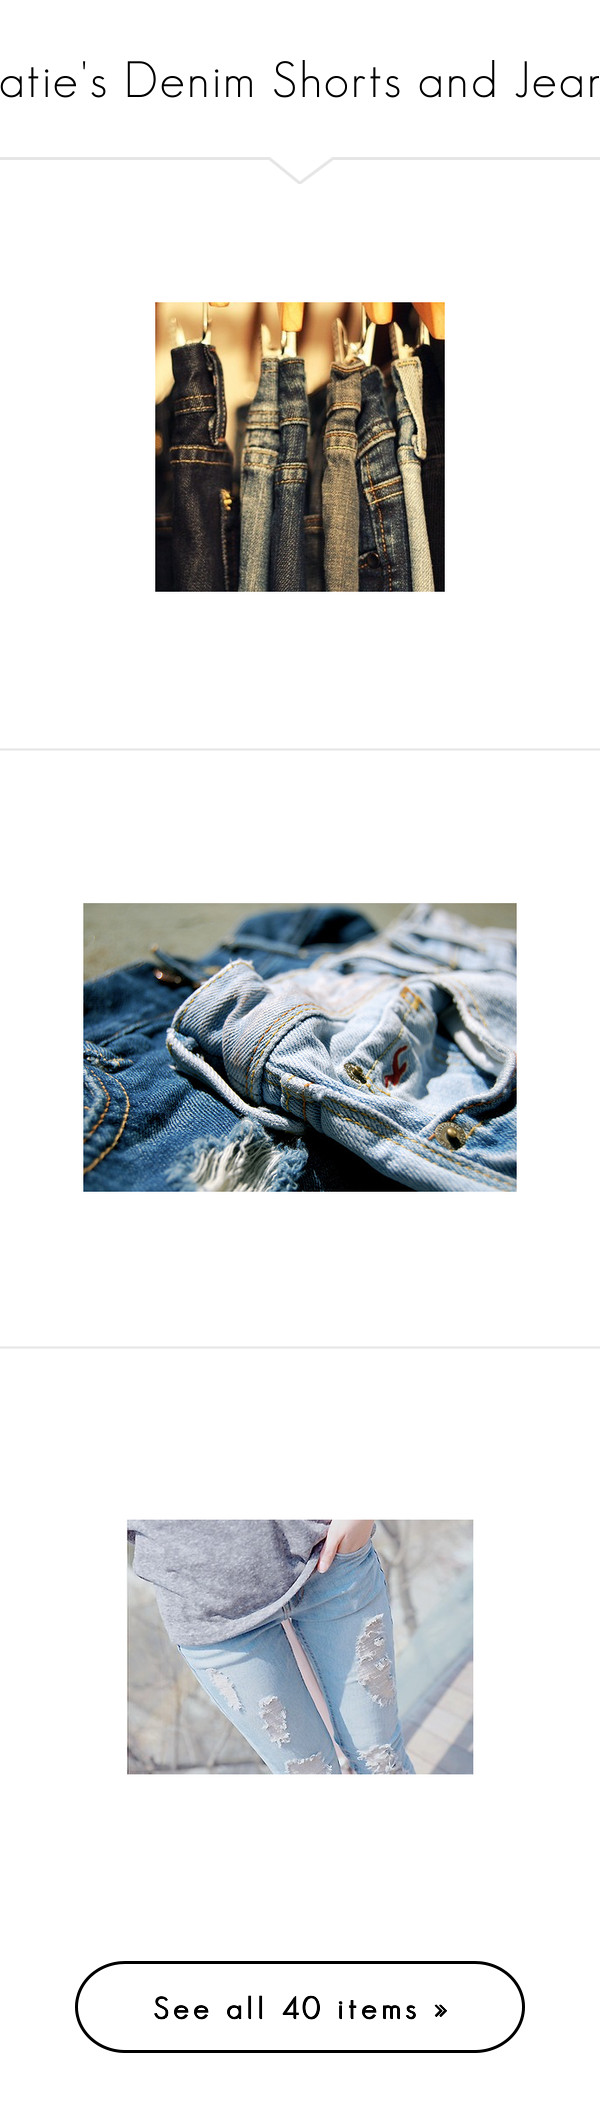 """""""Katie's Denim Shorts and Jeans"""" by katie-e-thomson ❤ liked on Polyvore featuring pictures, backgrounds, icons, blue, todas as fotos, photos, pics, filler, outfits and jeans"""